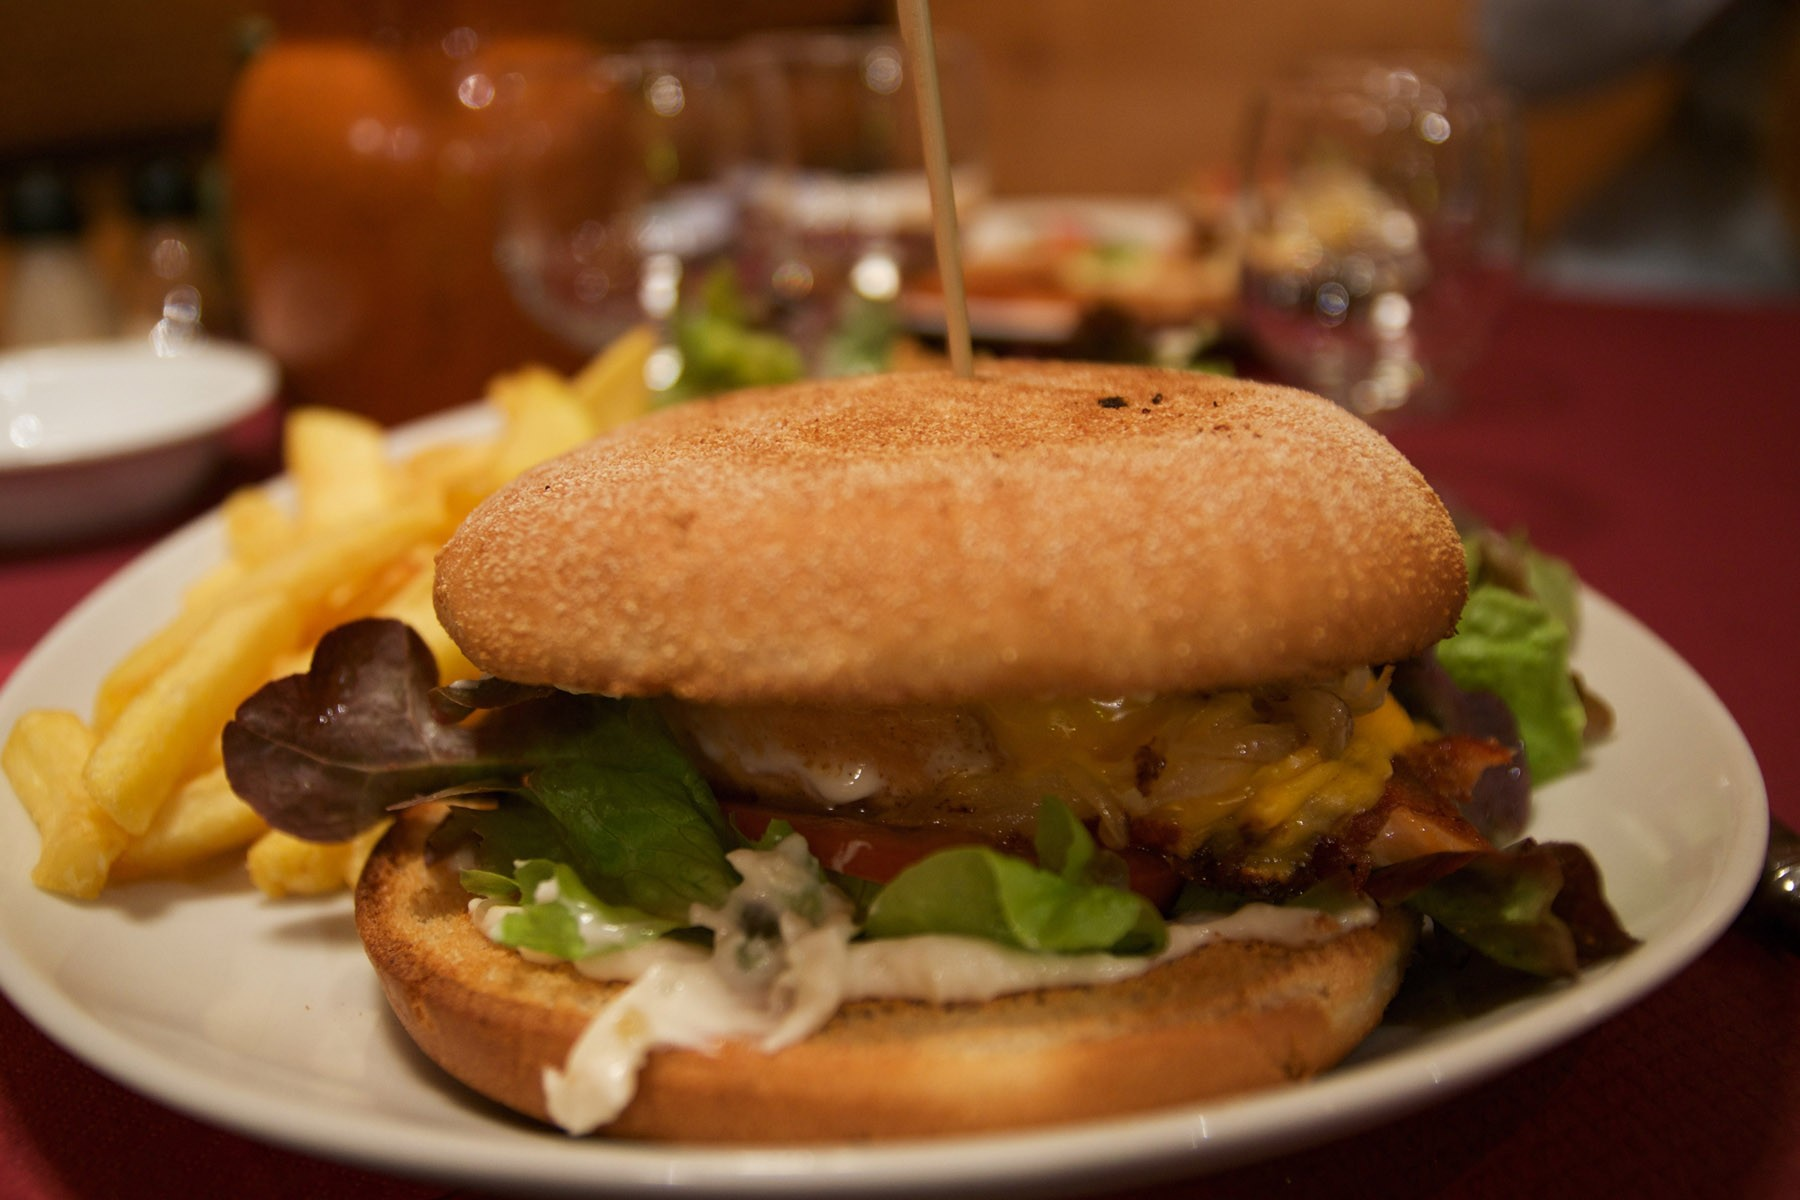 a-french-take-on-a-classic-canadian-salmon-burger-photo-by-adrien-le-coa%cc%88rer